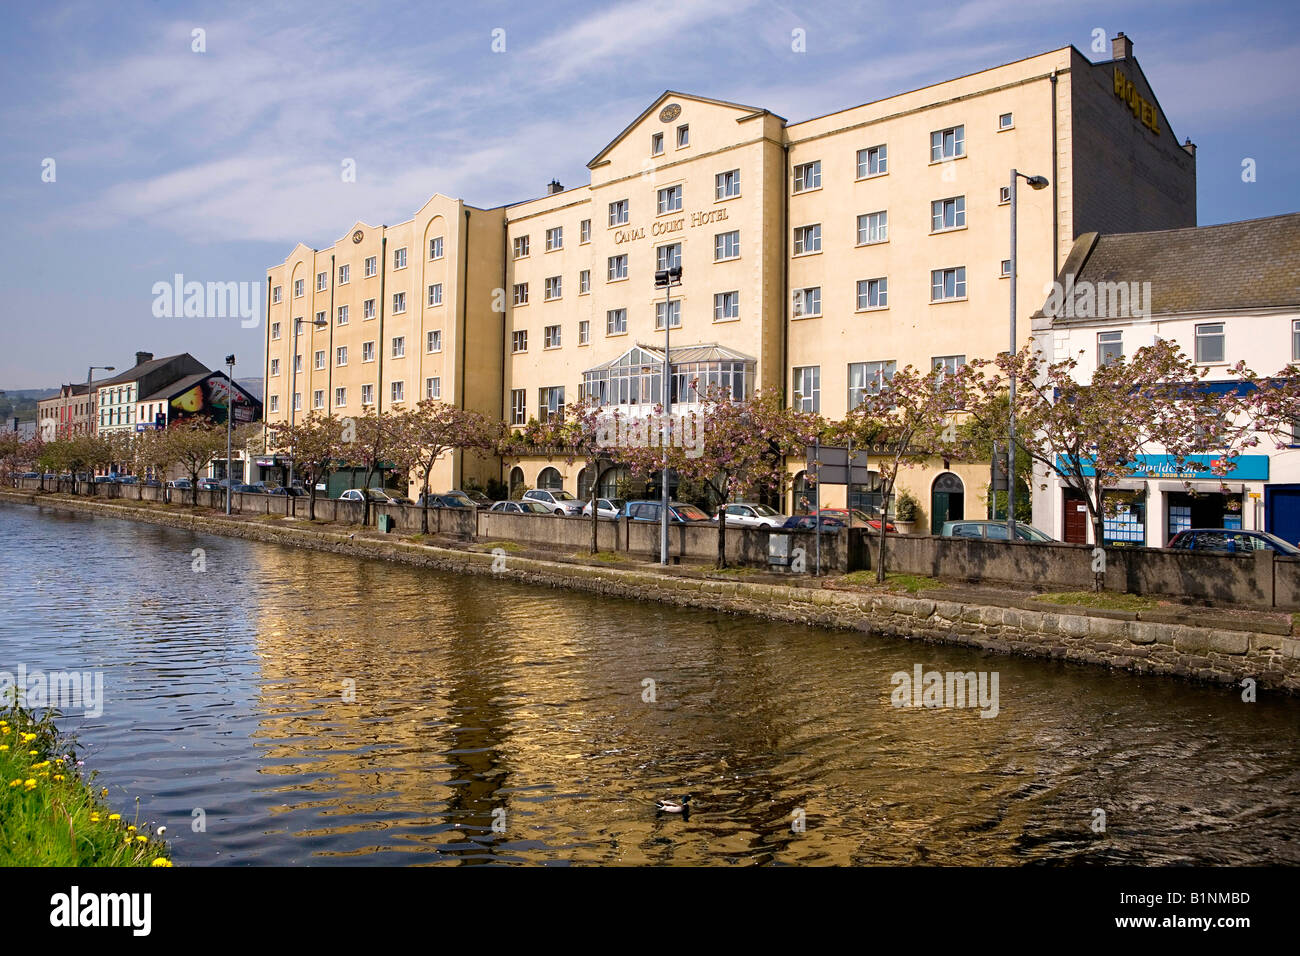 Newry Co Armagh Northern Ireland - Stock Image